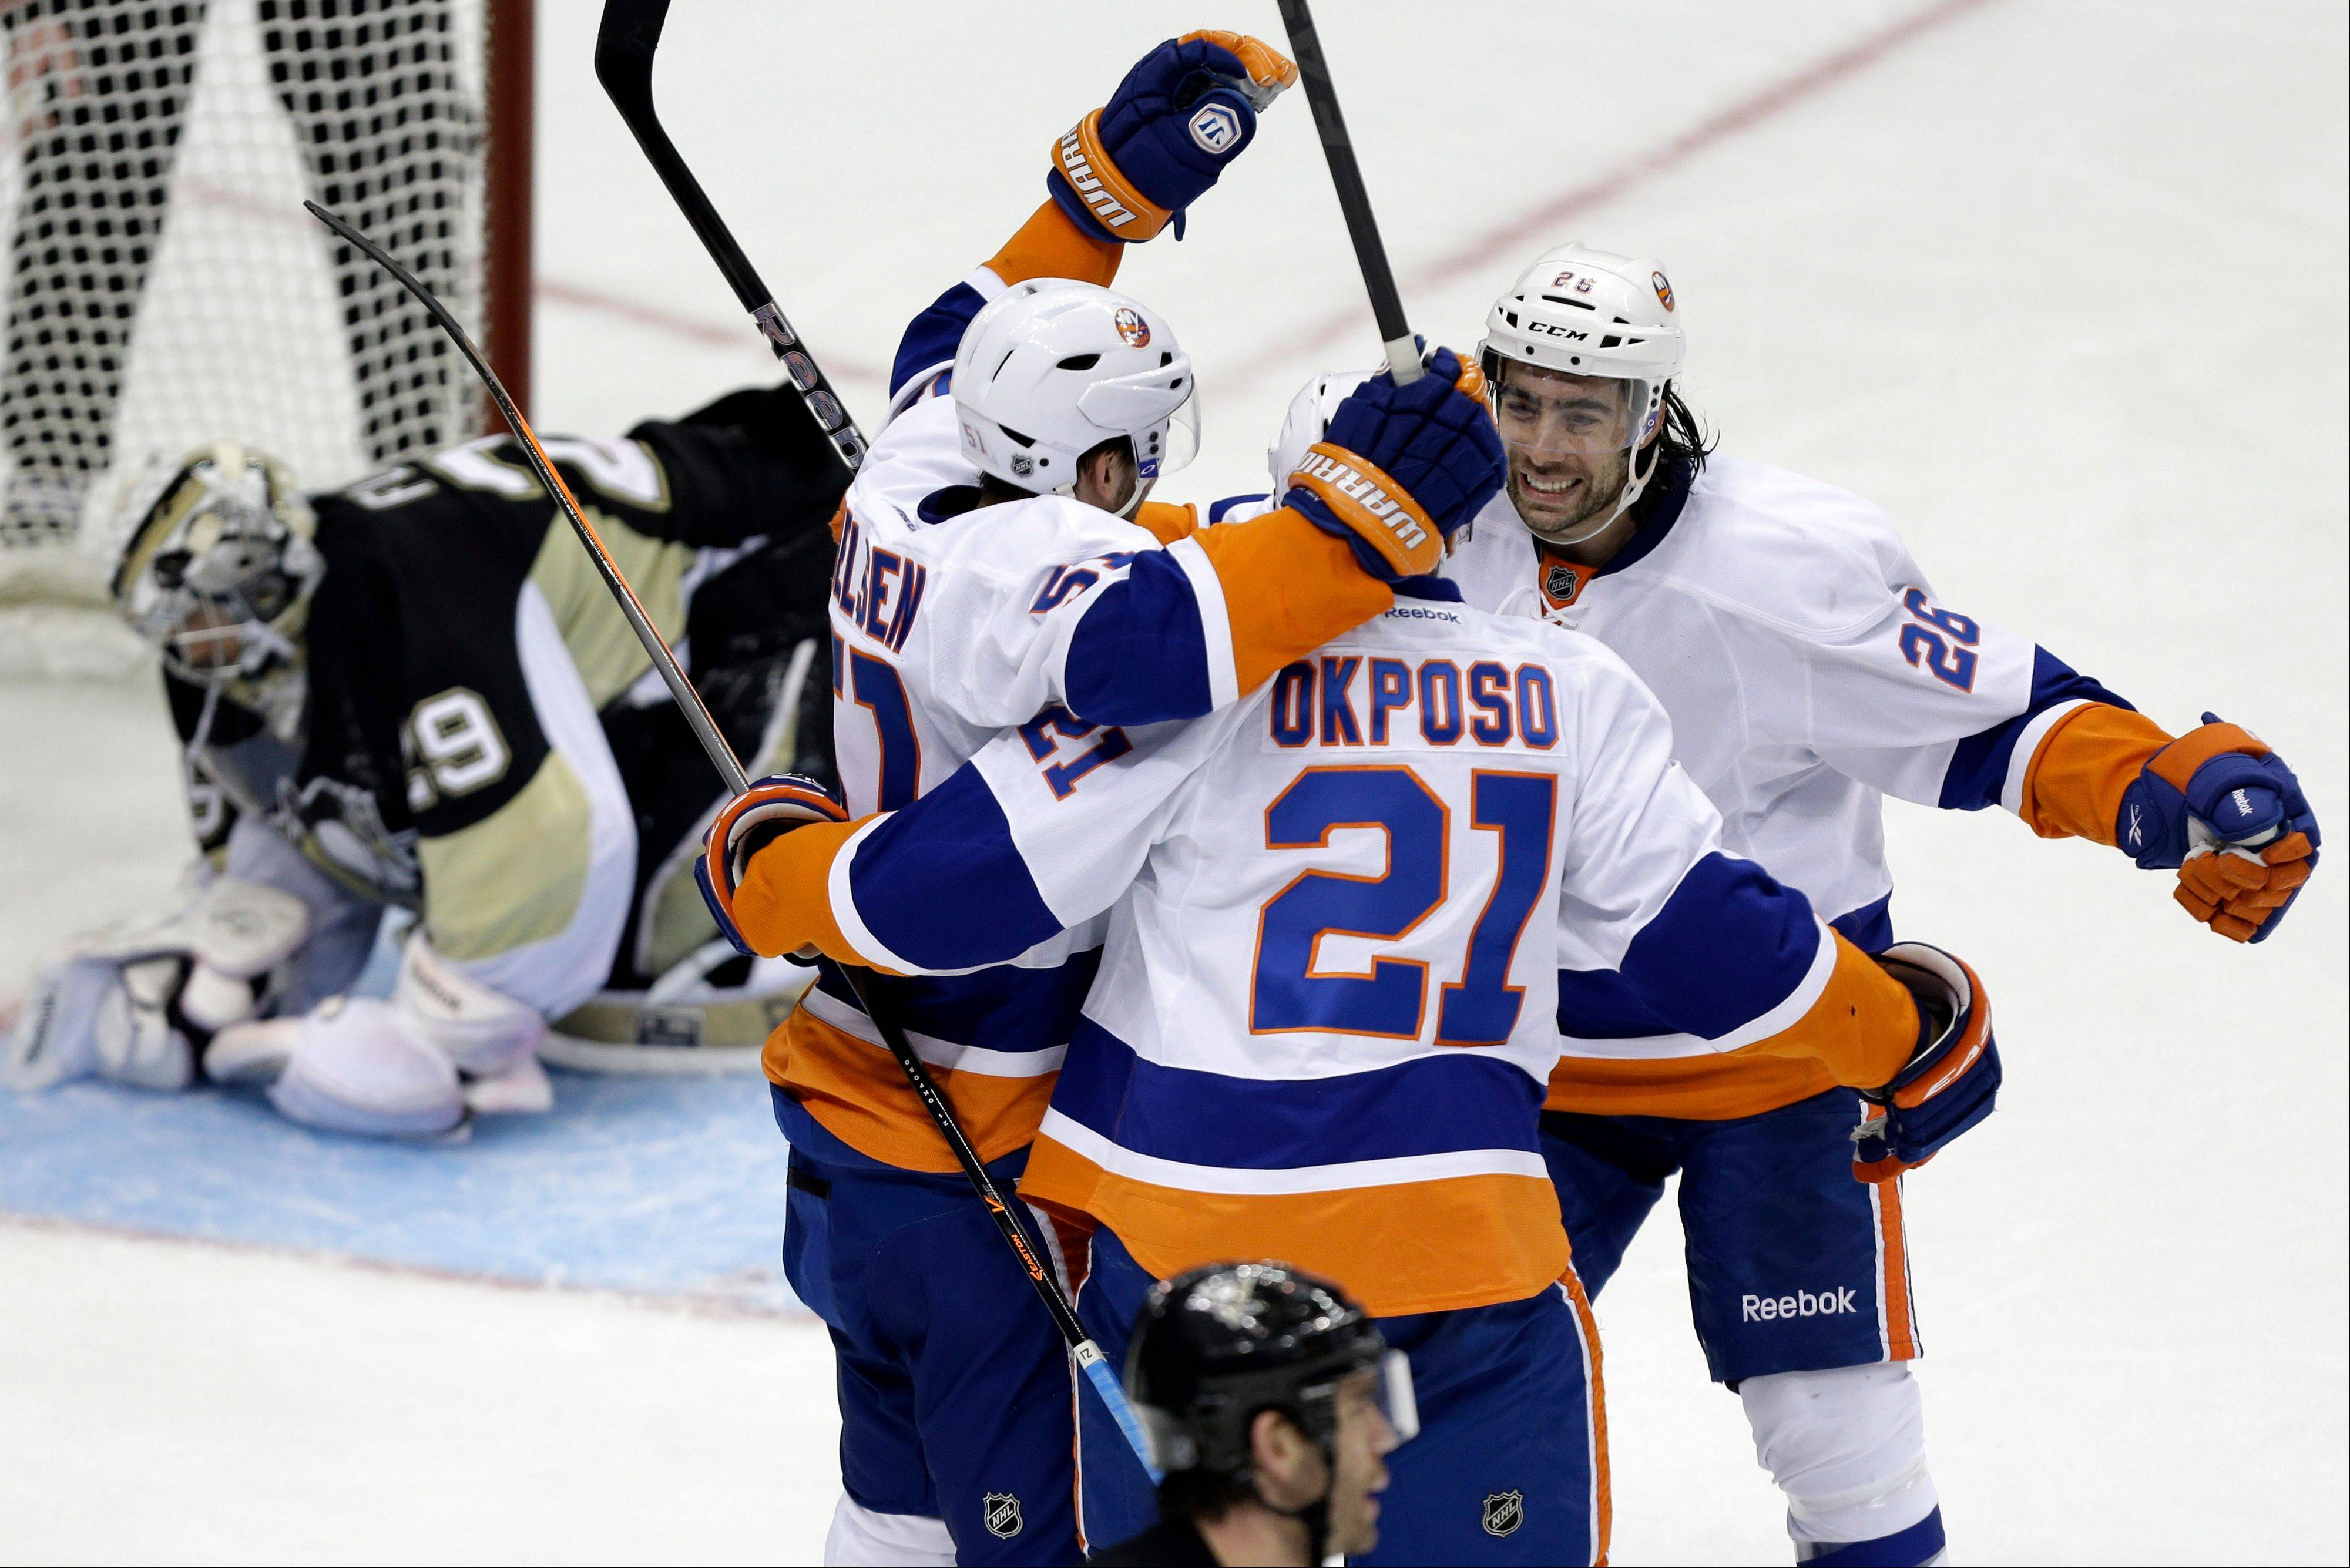 New York Islanders' Kyle Okposo (21) celebrates his goal with teammates Matt Moulson (26) and Frans Nielsen (51) as Pittsburgh Penguins goalie Marc-Andre Fleury (29) collects himself during the third period of Game 2 of an NHL hockey Stanley Cup first-round playoff series, Friday, May 3, 2013, in Pittsburgh. The Islanders won 4-3 to even the series at 1-1.(AP Photo/Gene J. Puskar)